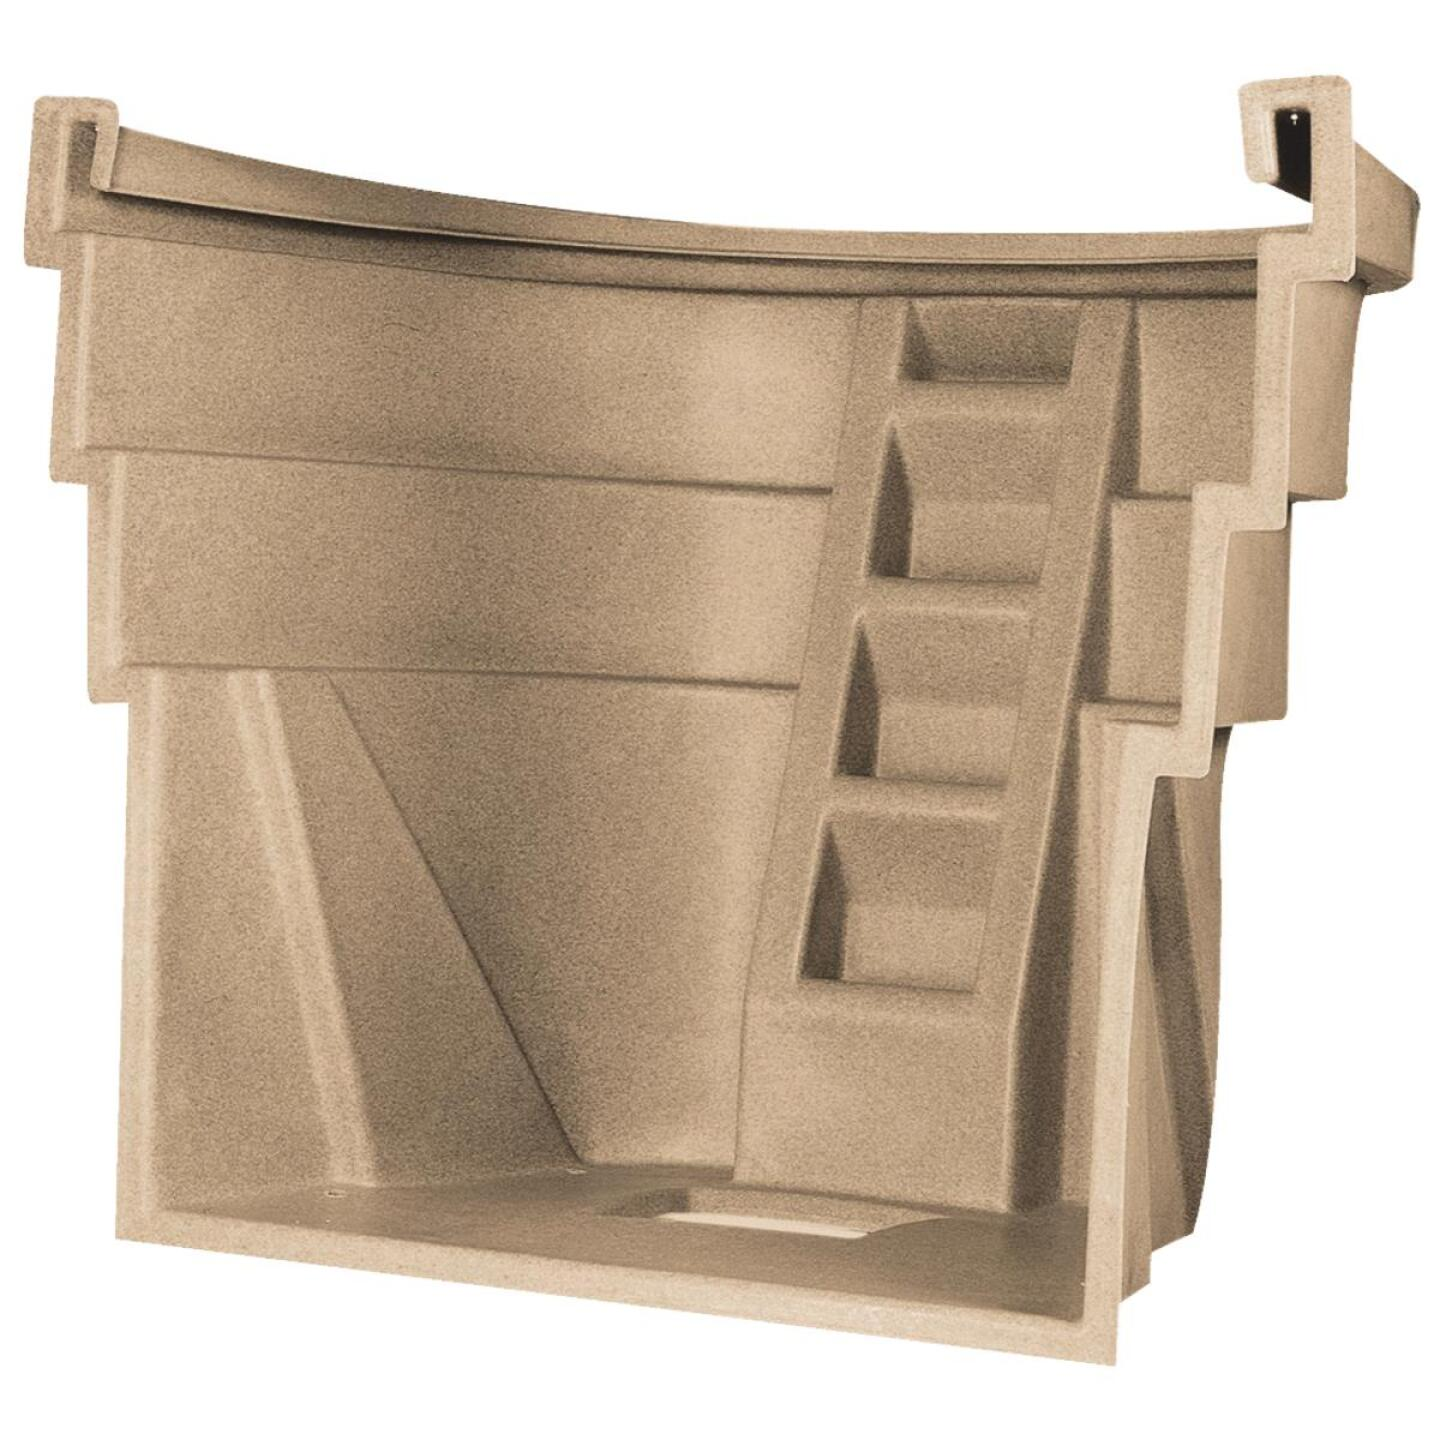 Wellcraft 60 In. x 48 In. Egress UV-Protected Polyethylene Sandstone Window Well Image 1